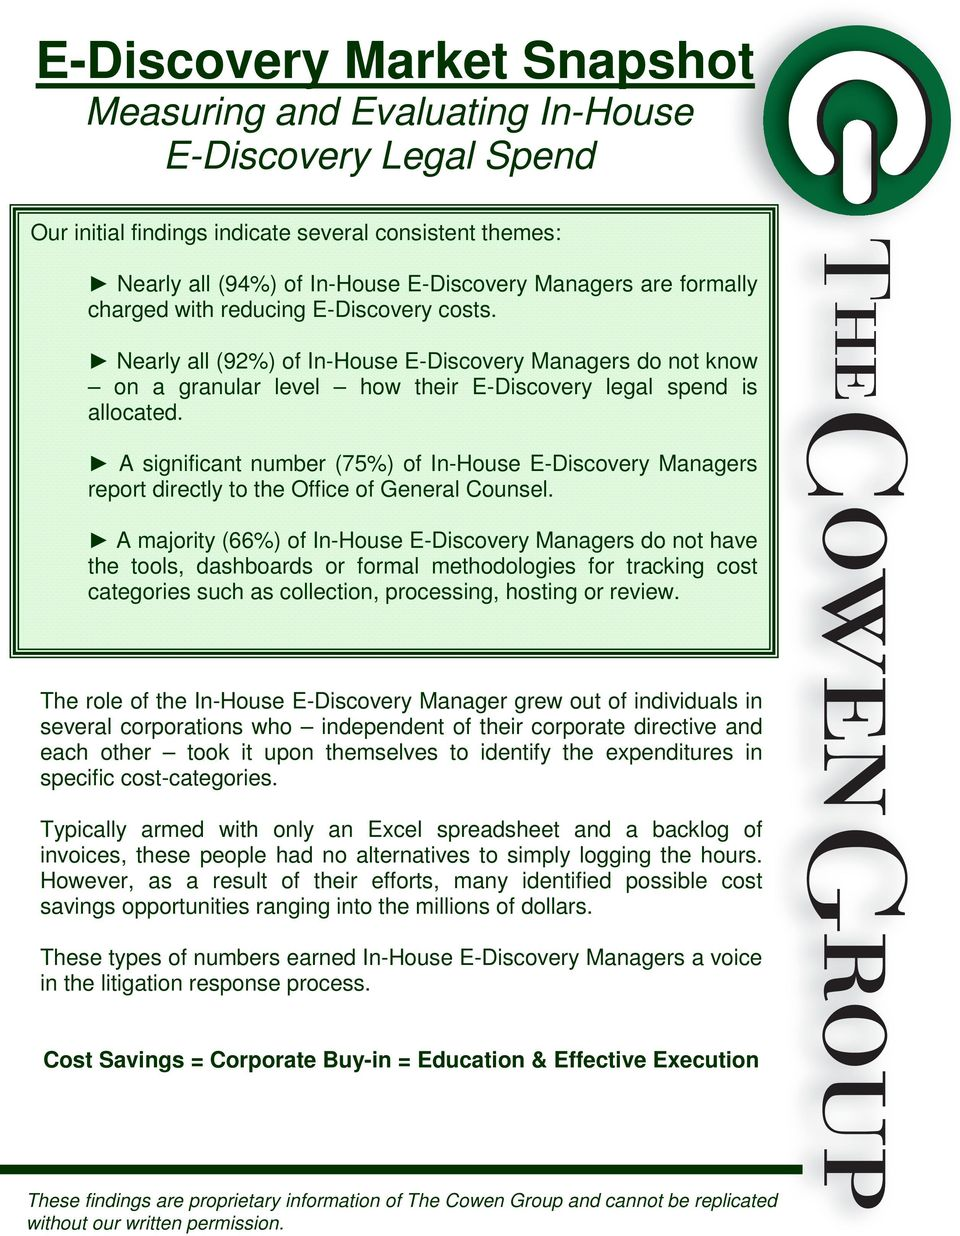 A significant number (75%) of In-House E-Discovery Managers report directly to the Office of General Counsel.